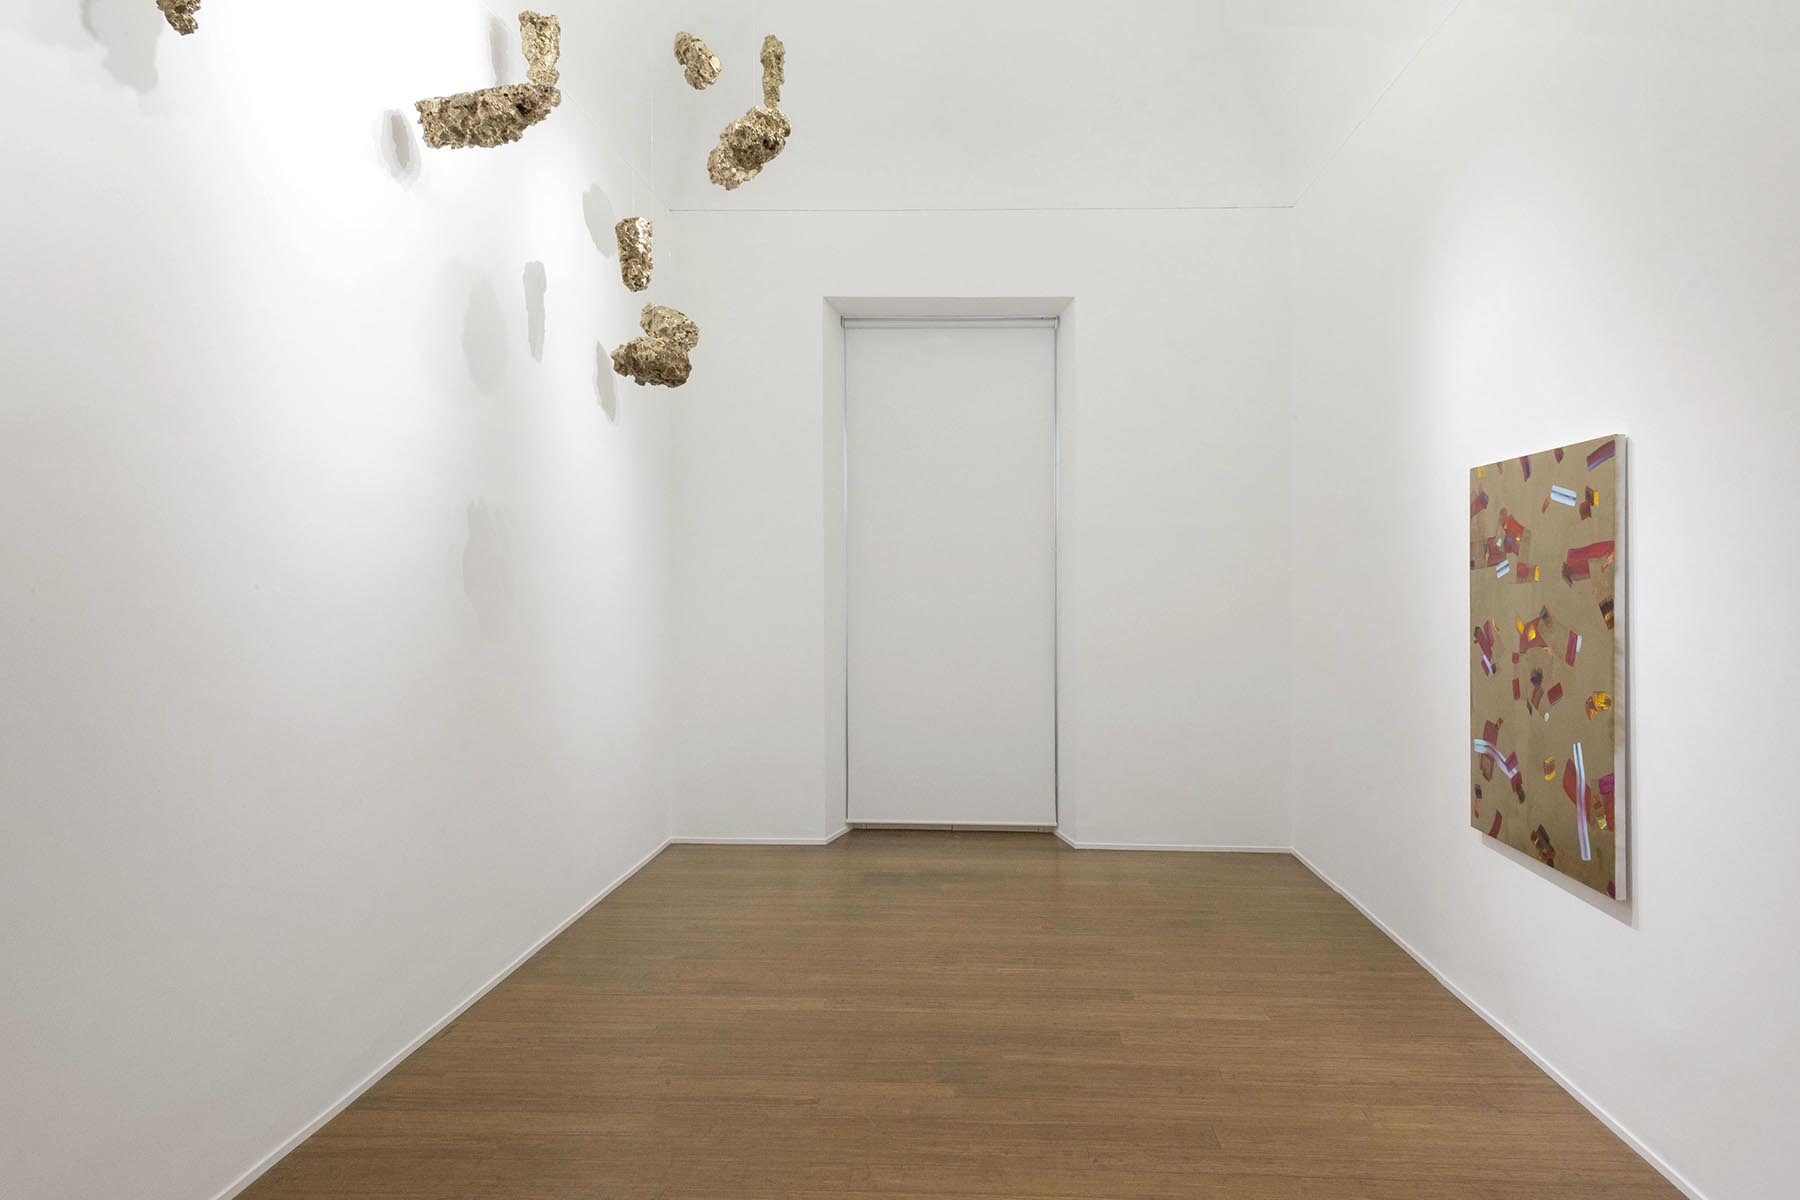 Isabella Nazzarri, Clinamen, 2017, installation view, ABC-Arte, Genoa